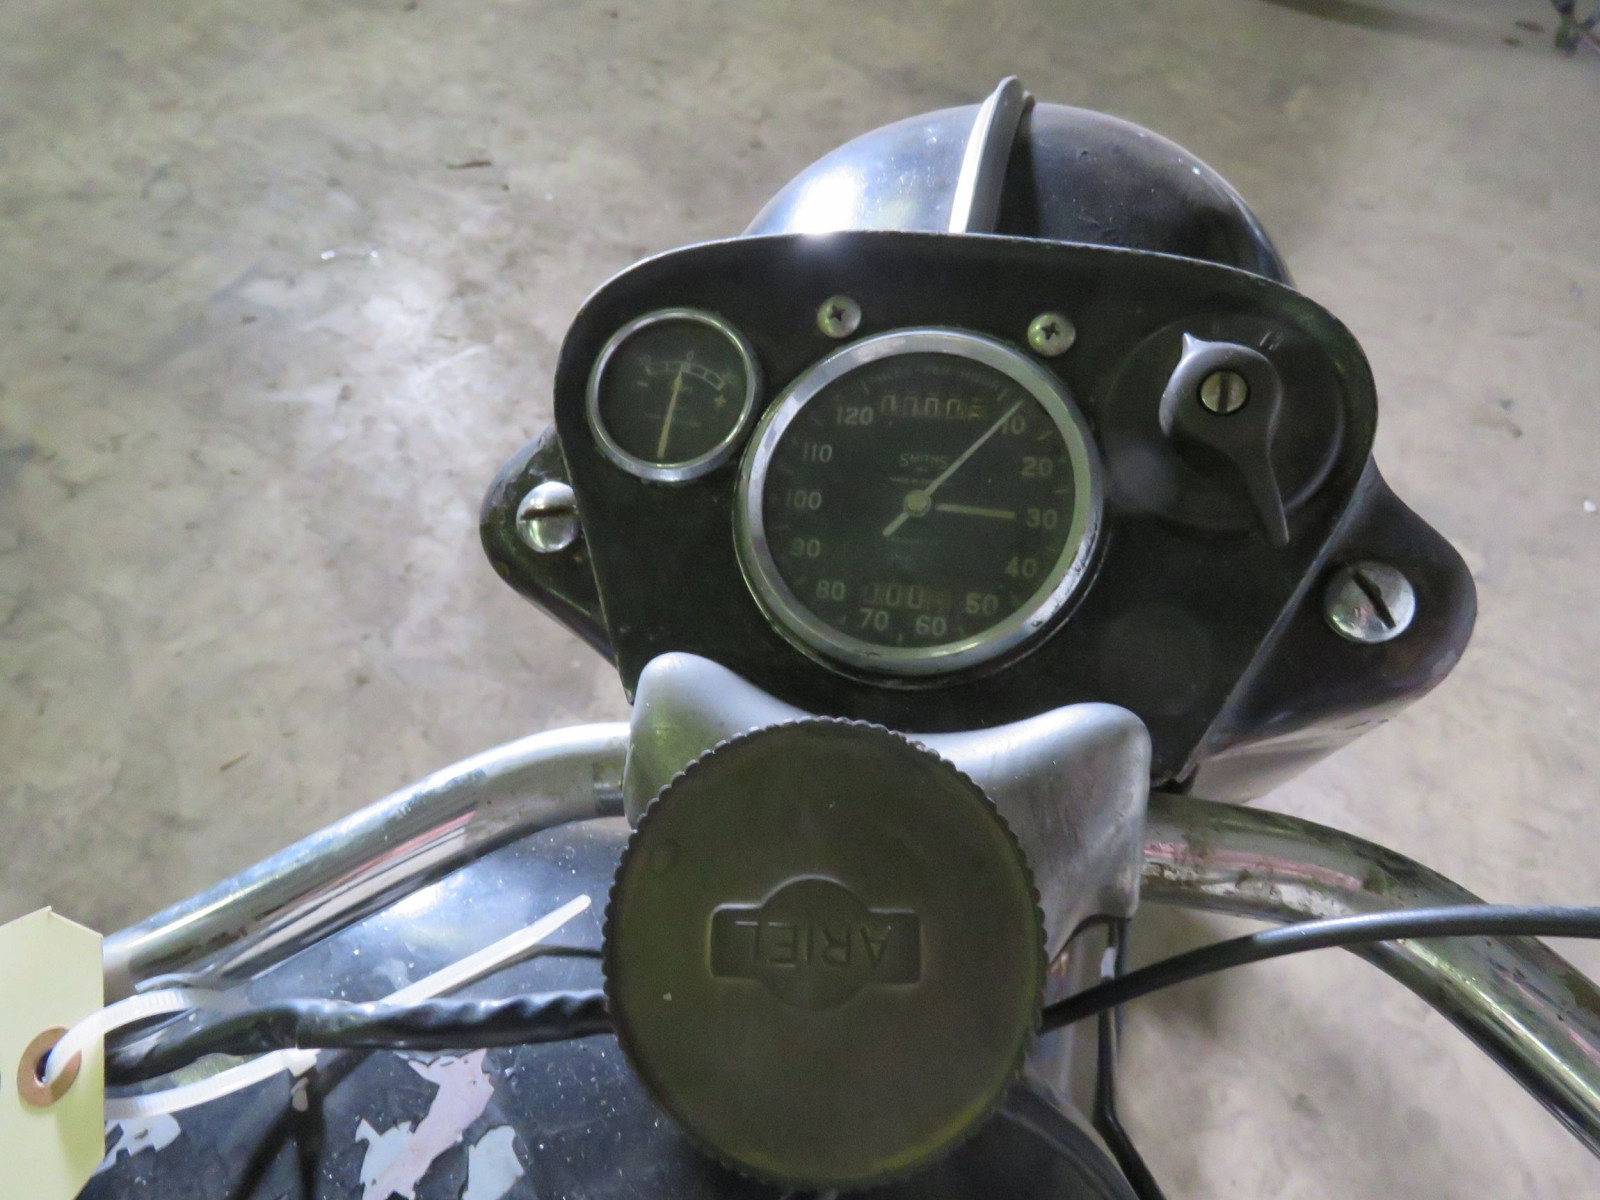 1957 Ariel Square Four Motorcycle - Image 3